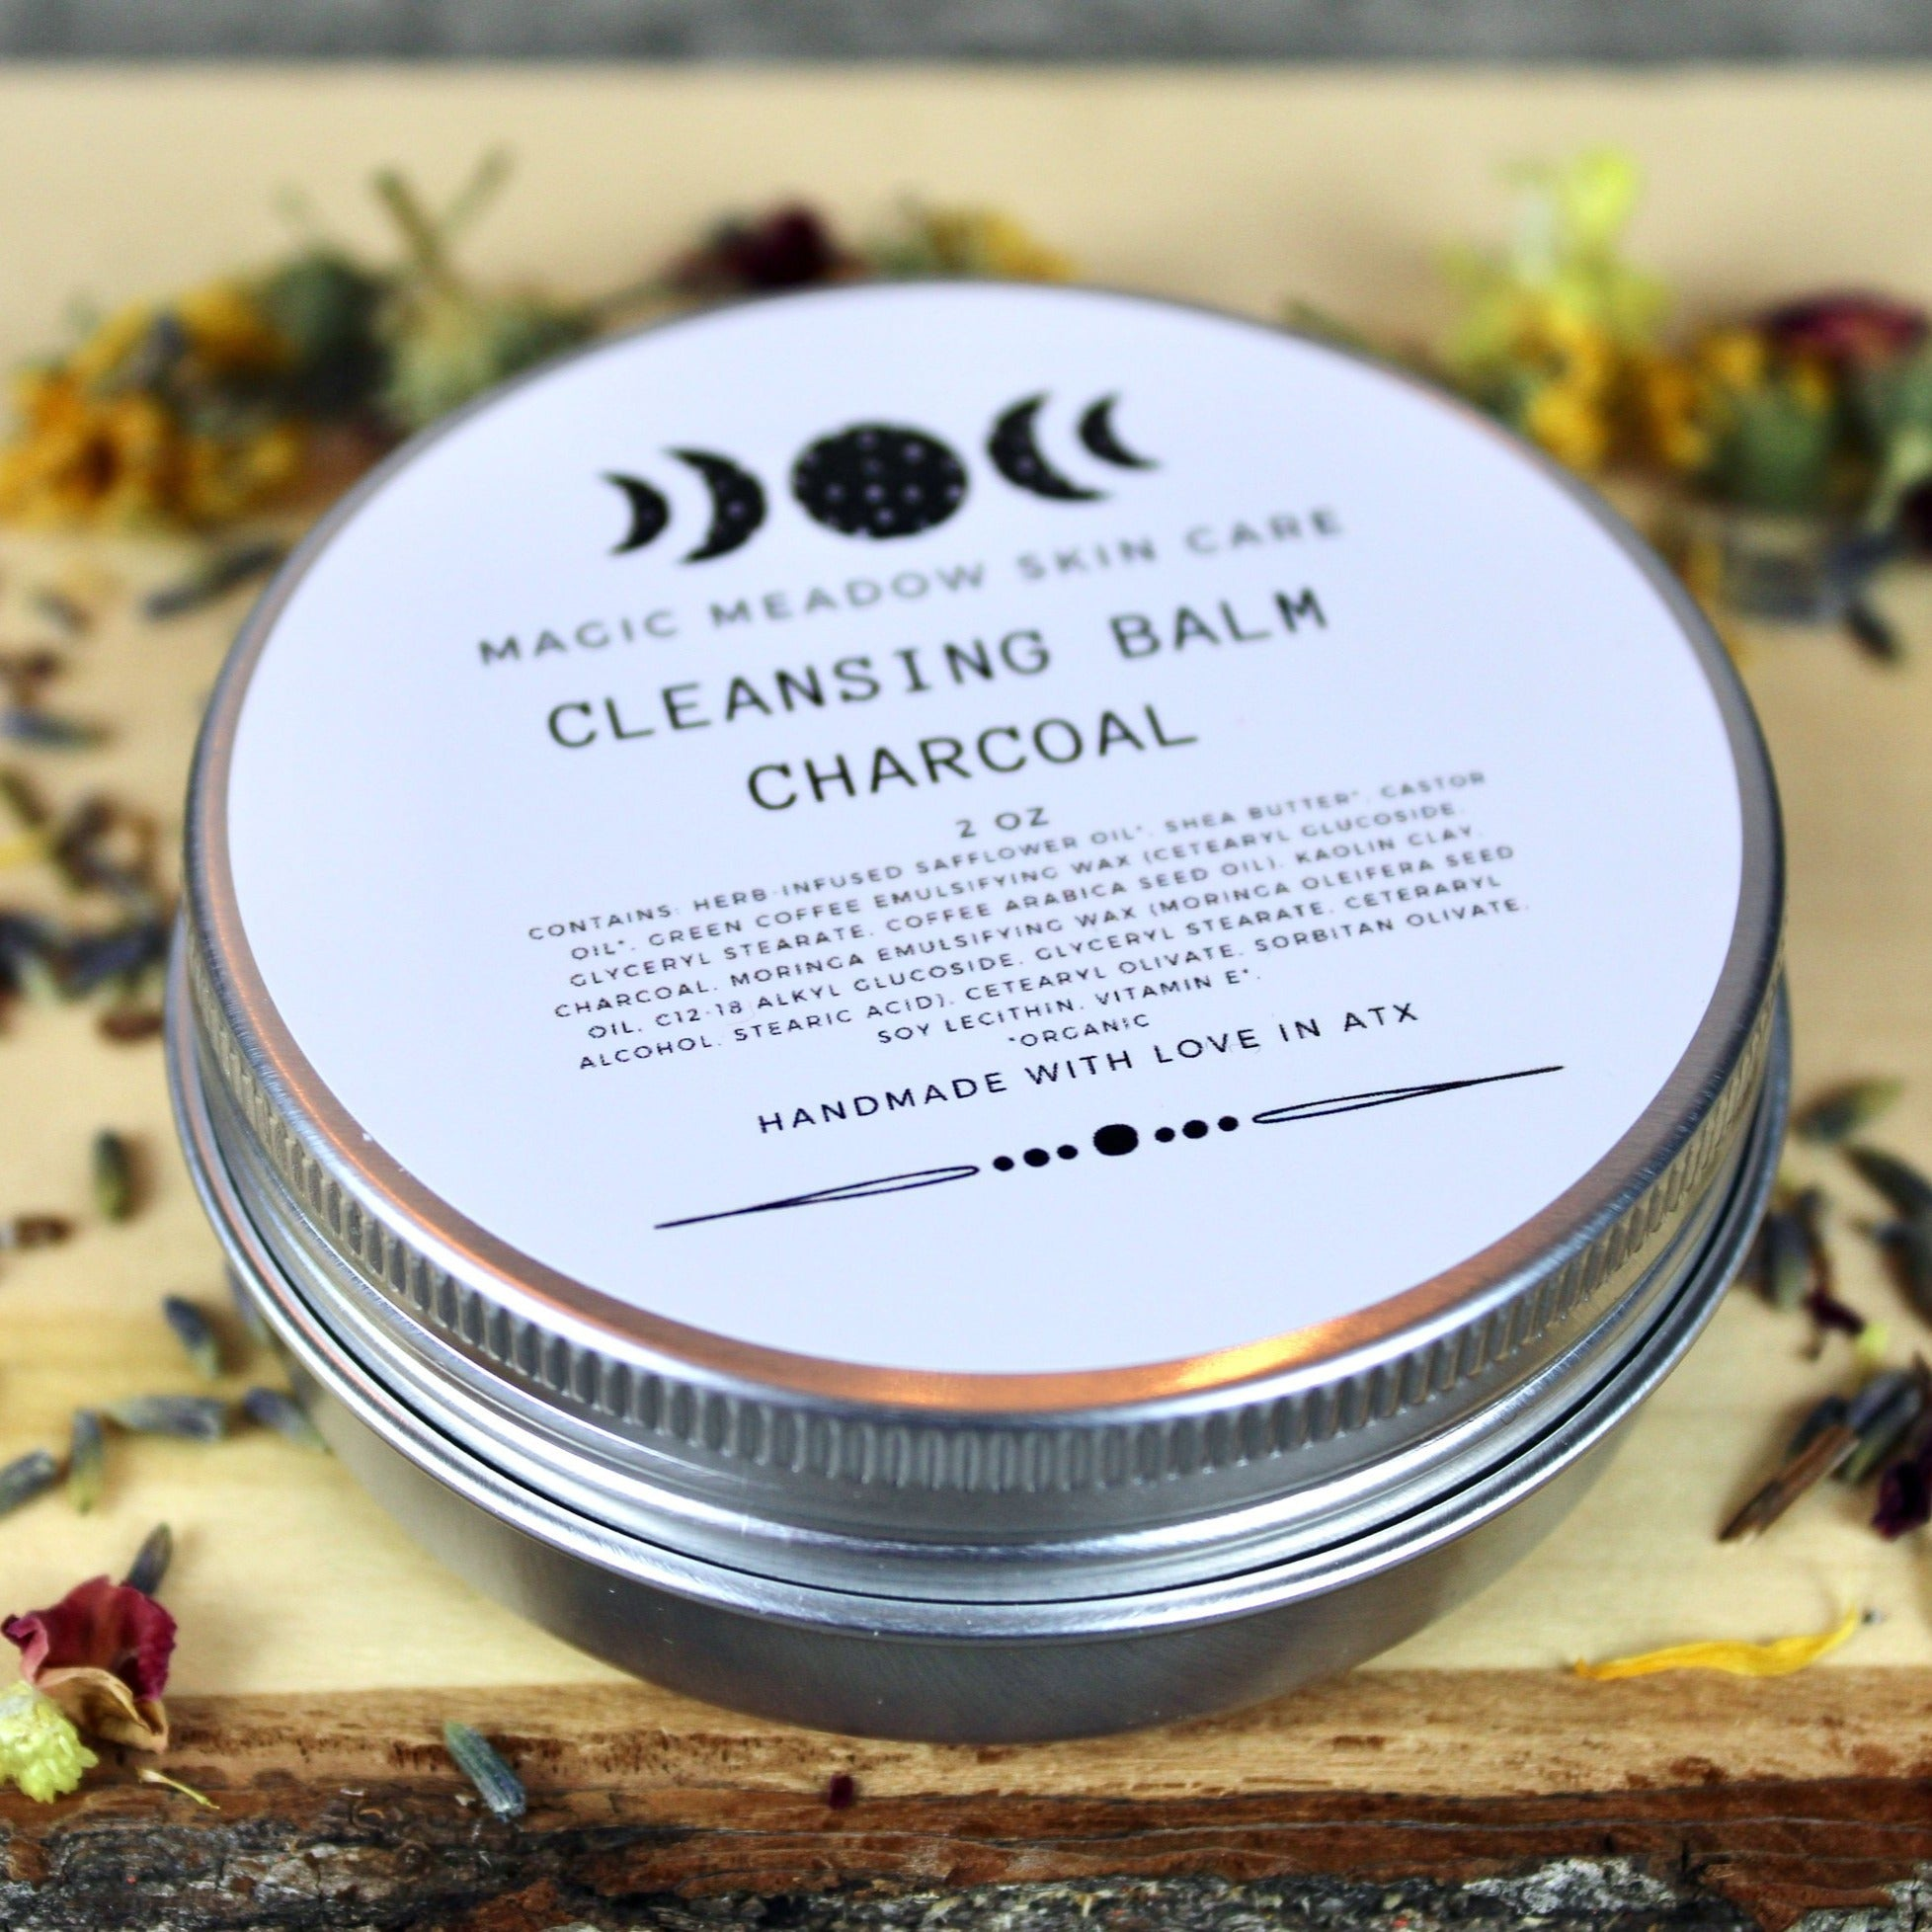 Charcoal Cleansing Balm